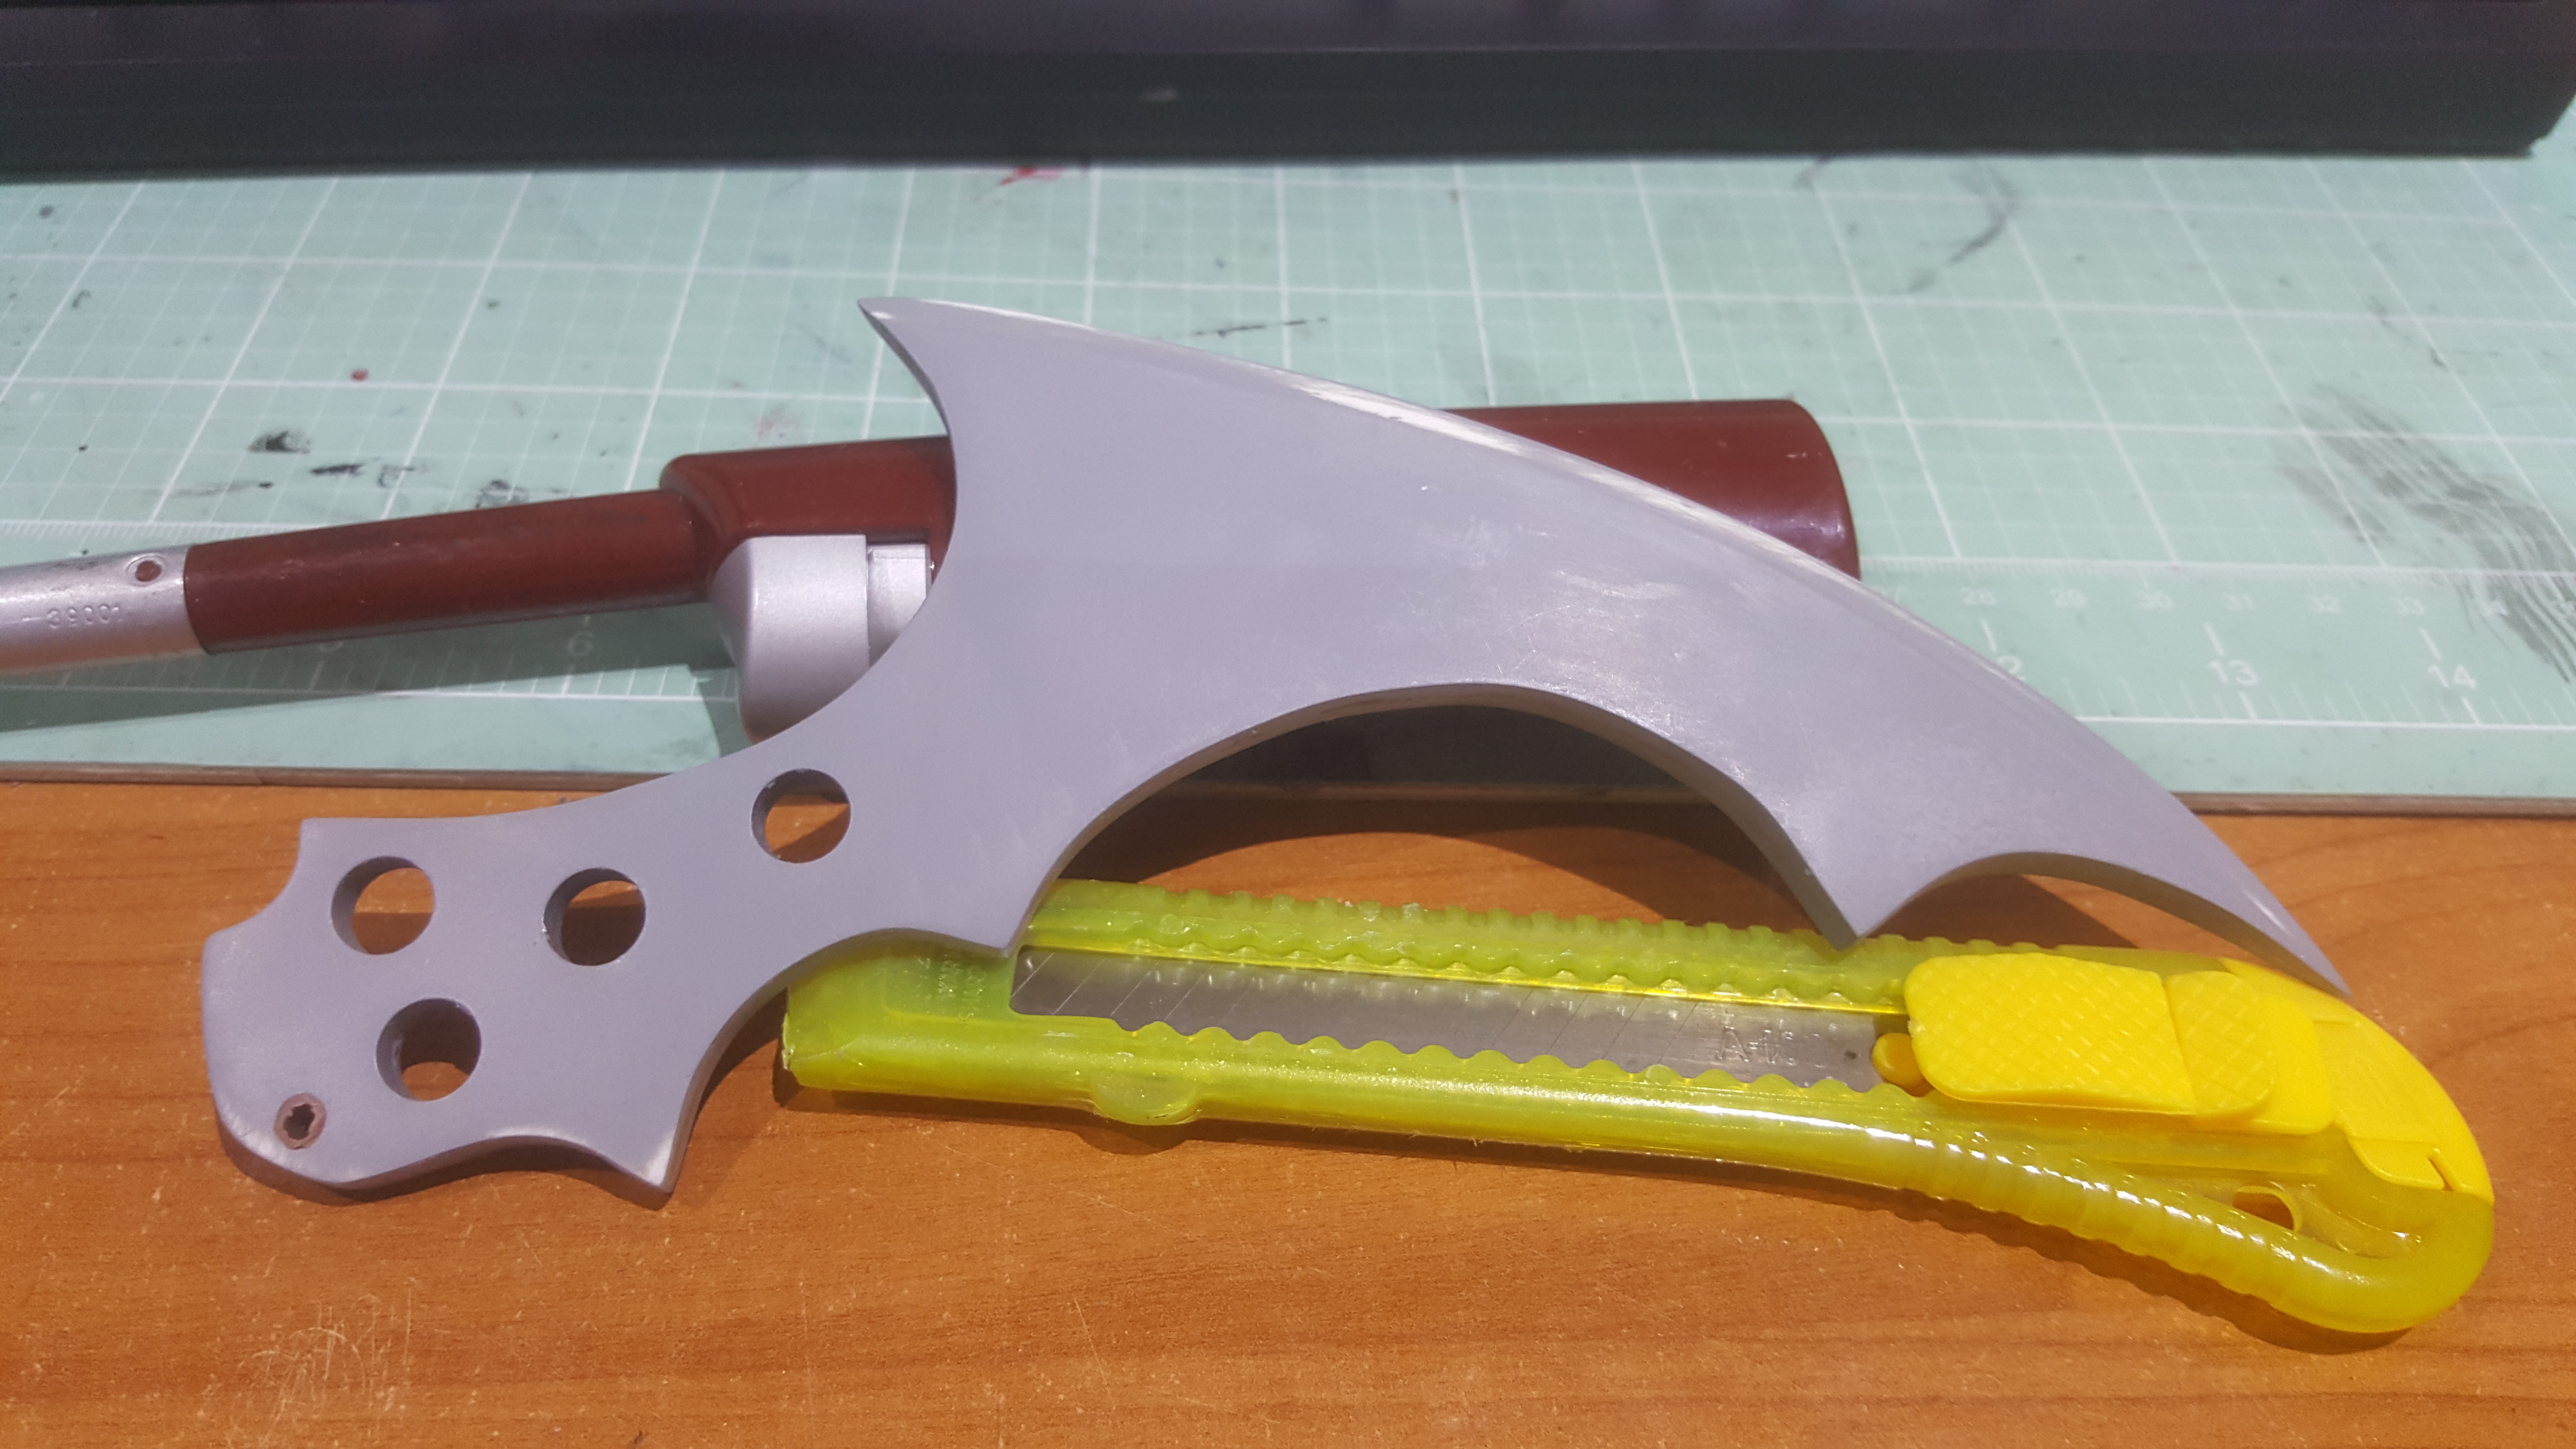 Picture of Refinements and Materials for Molding/Casting